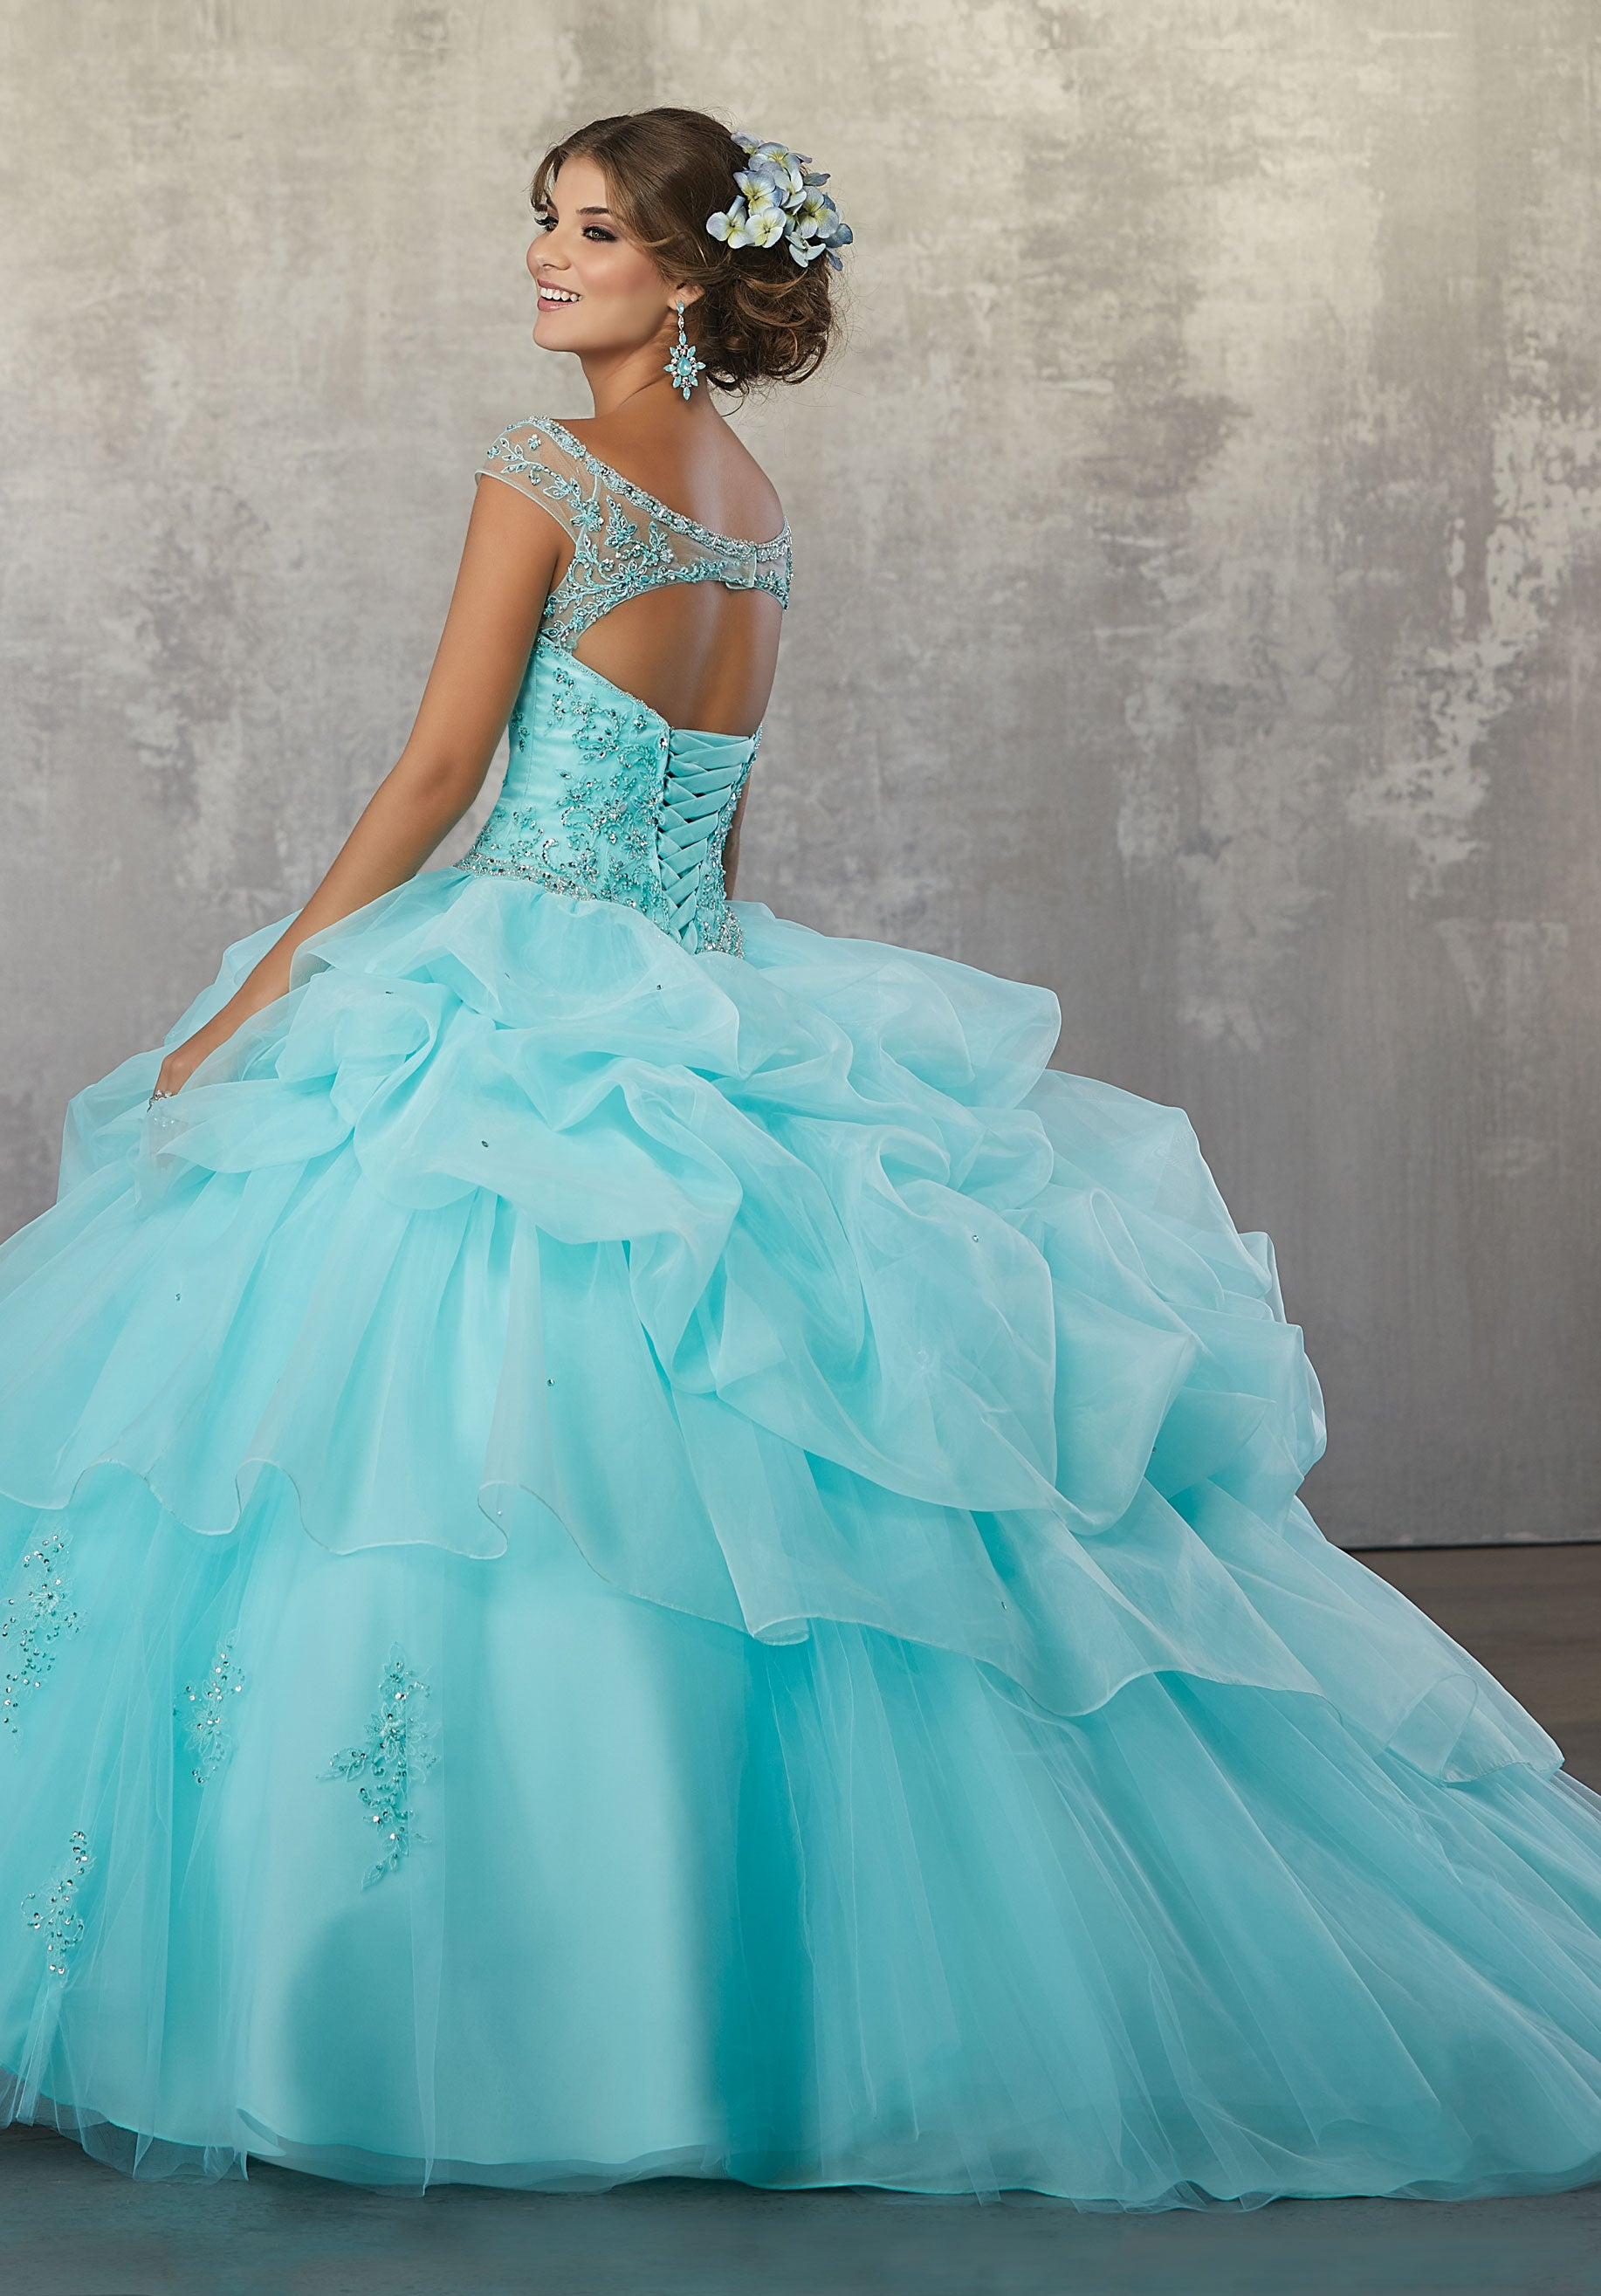 d1bf9bbe0f3 78056 Quinceanera Ballgown with Beaded Embroidery on a Ruched Organza and  Tulle